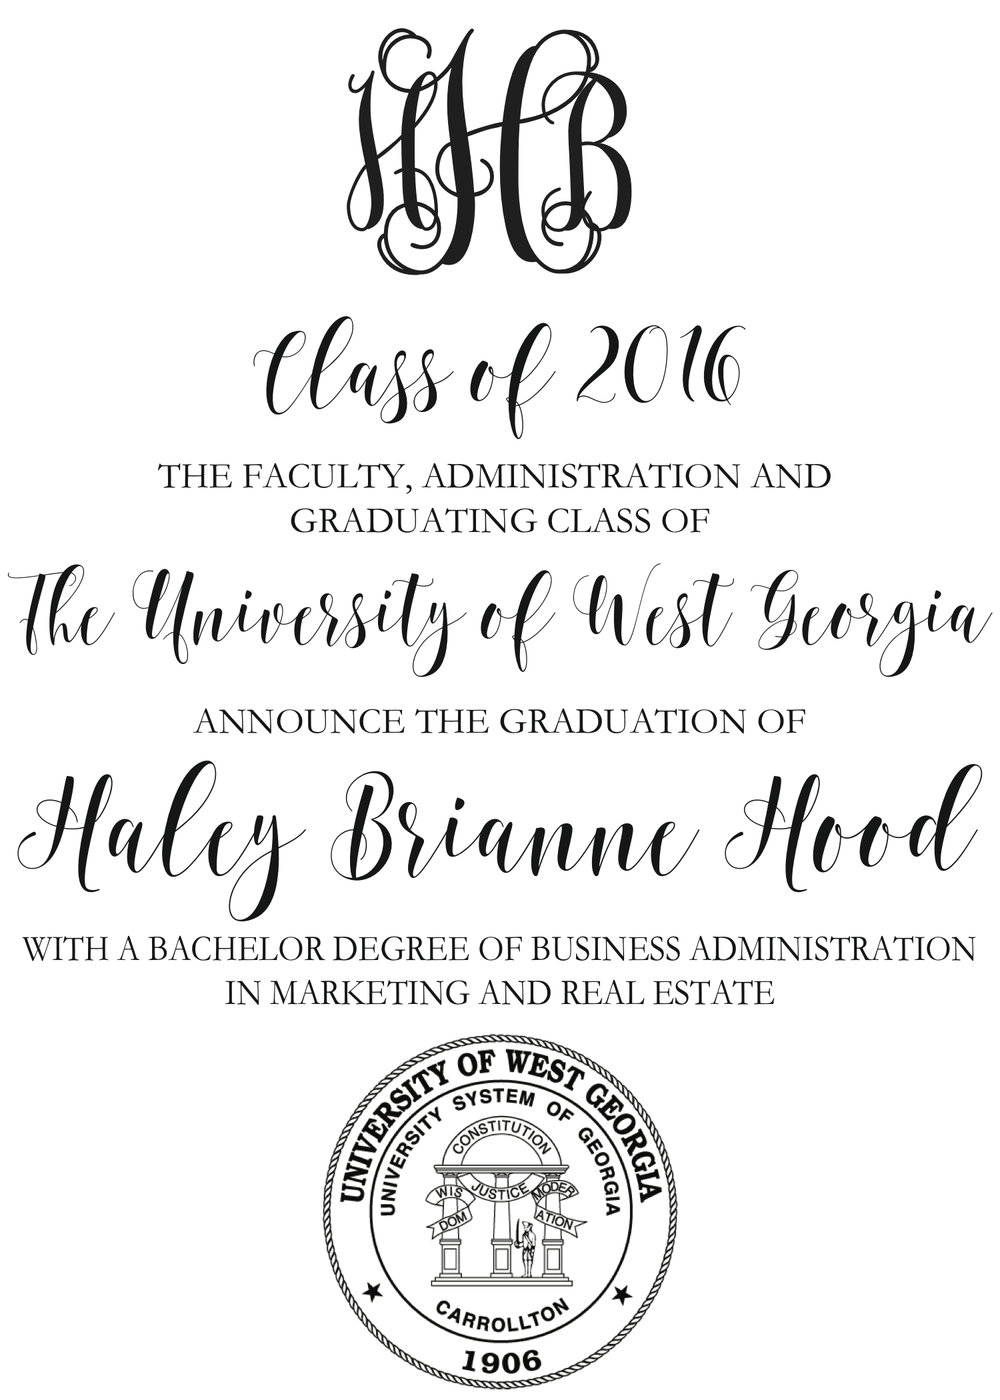 HBH graduation announcement.jpg